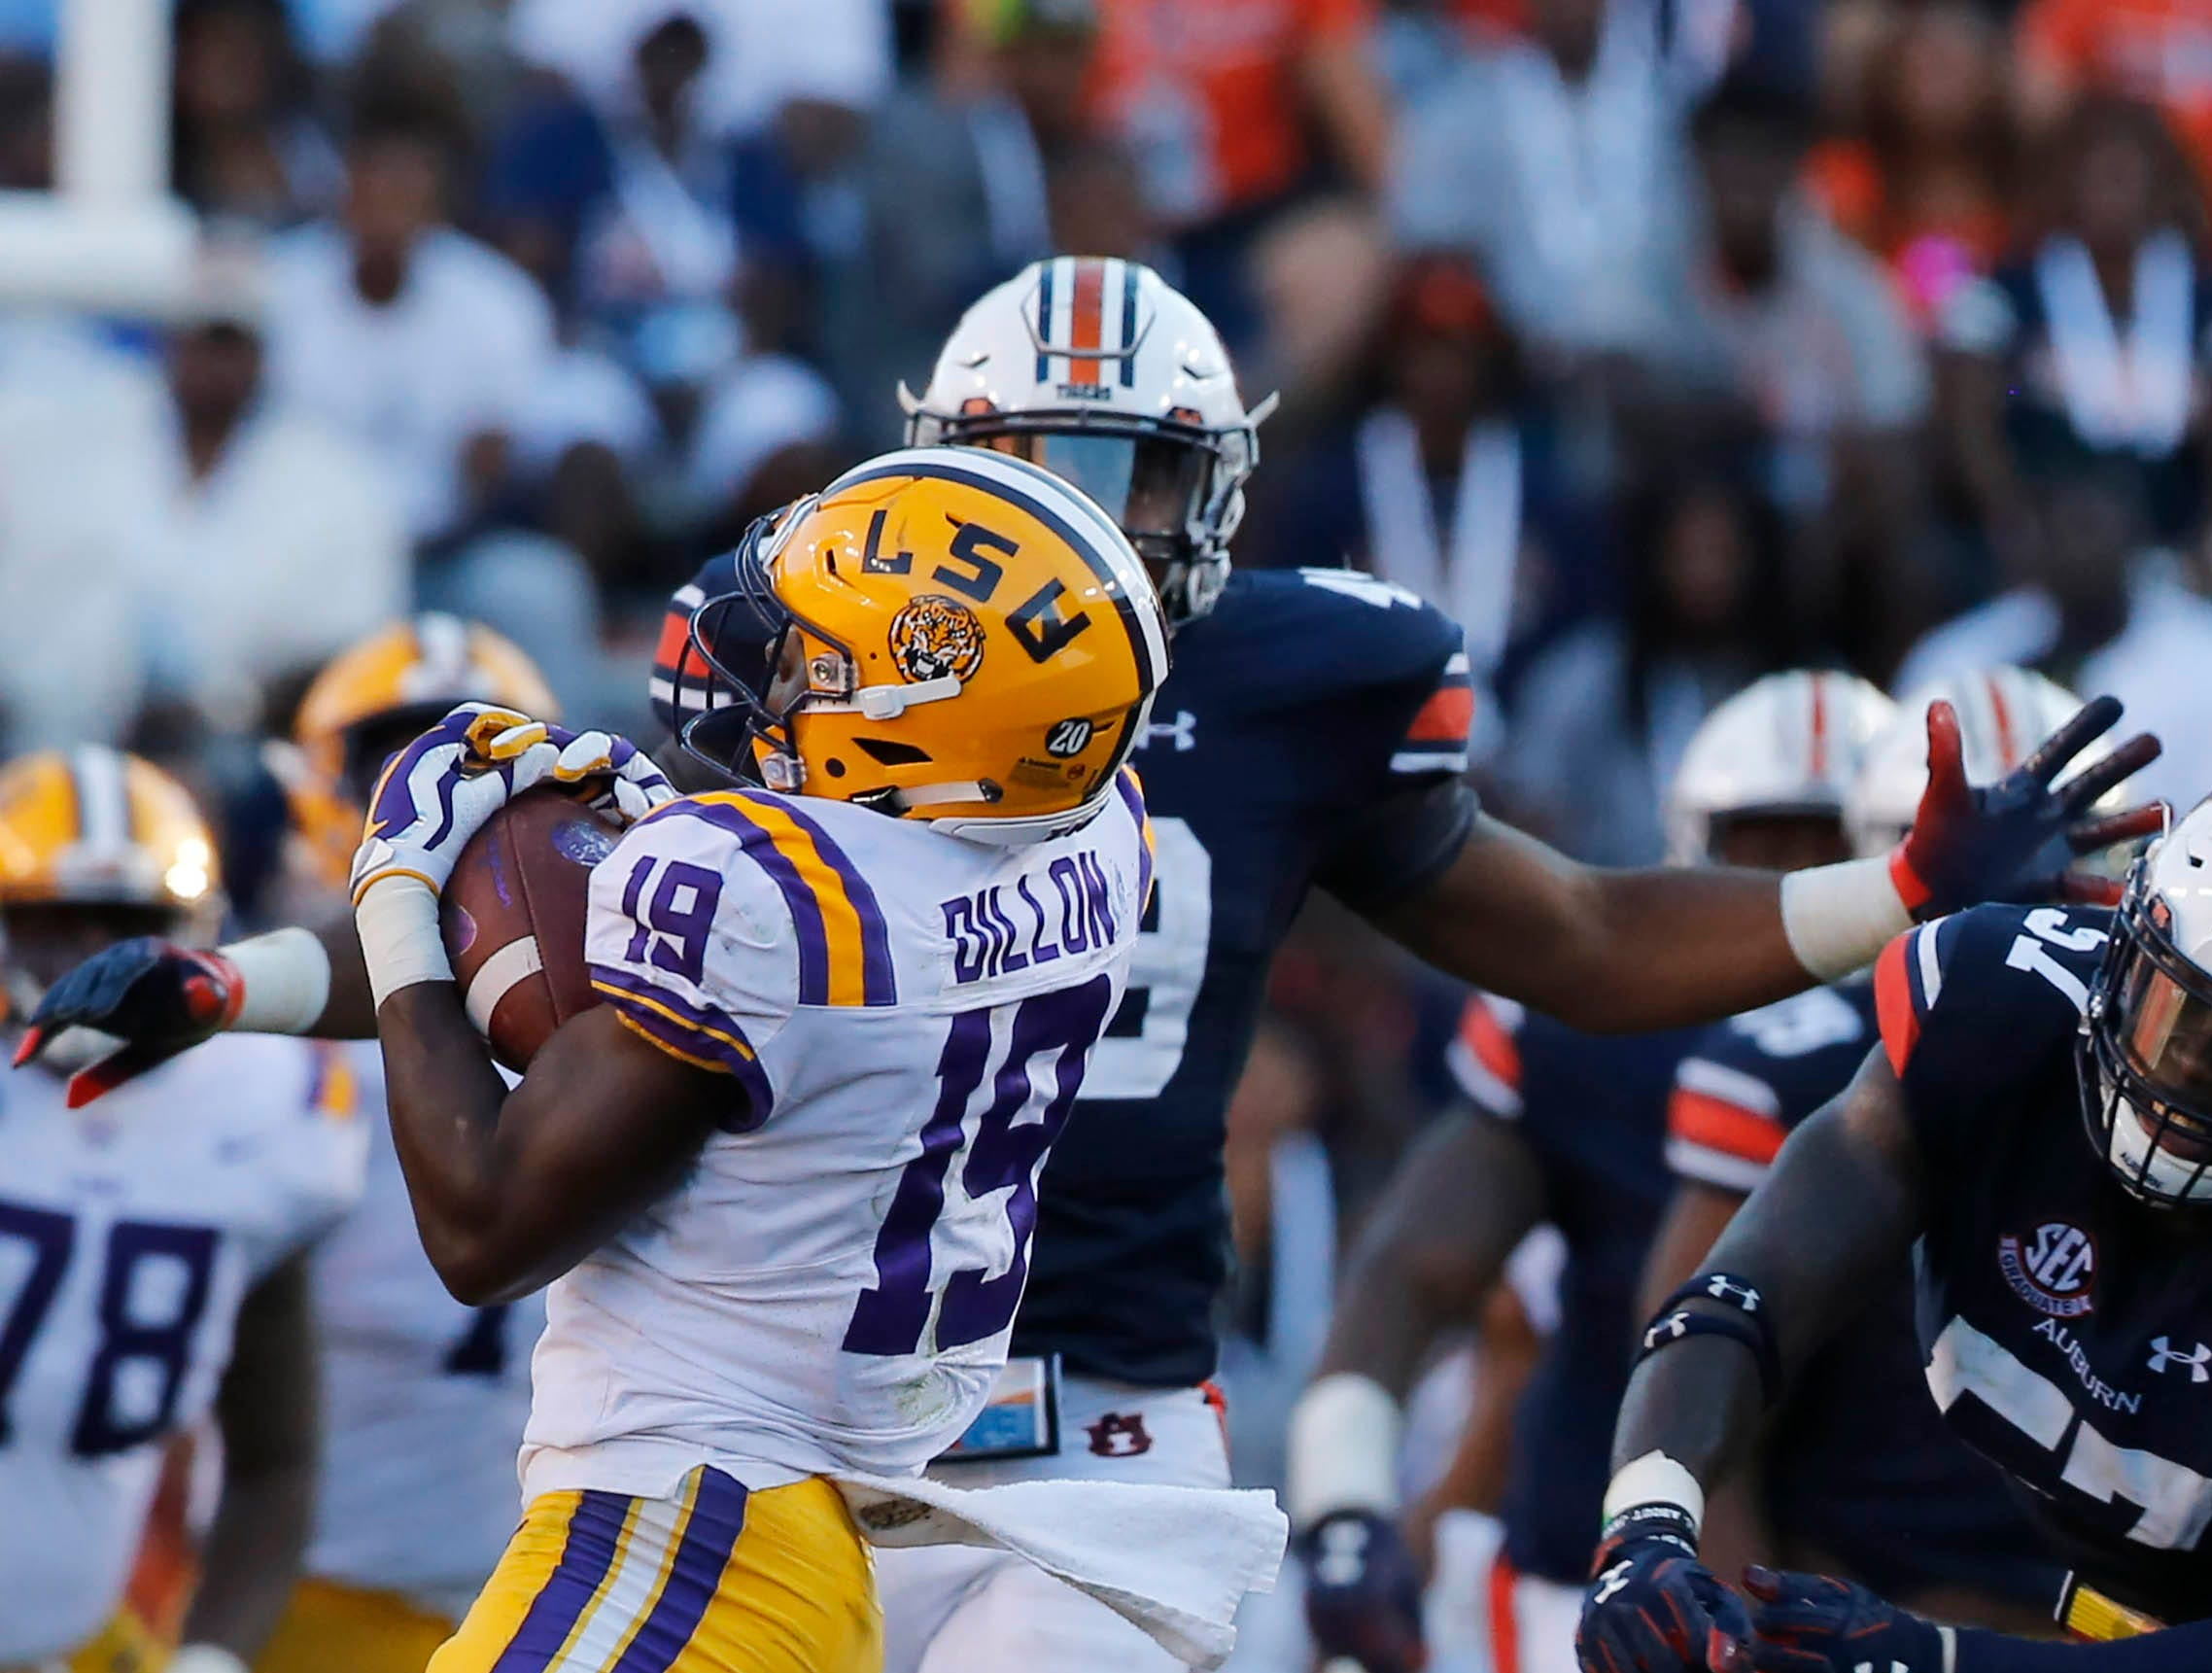 Sep 15, 2018; Auburn, AL, USA; LSU Tigers receiver Derrick Dillon (19) catches a pass over Auburn Tigers linebacker Darrell Williams (48) during the fourth quarter at Jordan-Hare Stadium. Mandatory Credit: John Reed-USA TODAY Sports